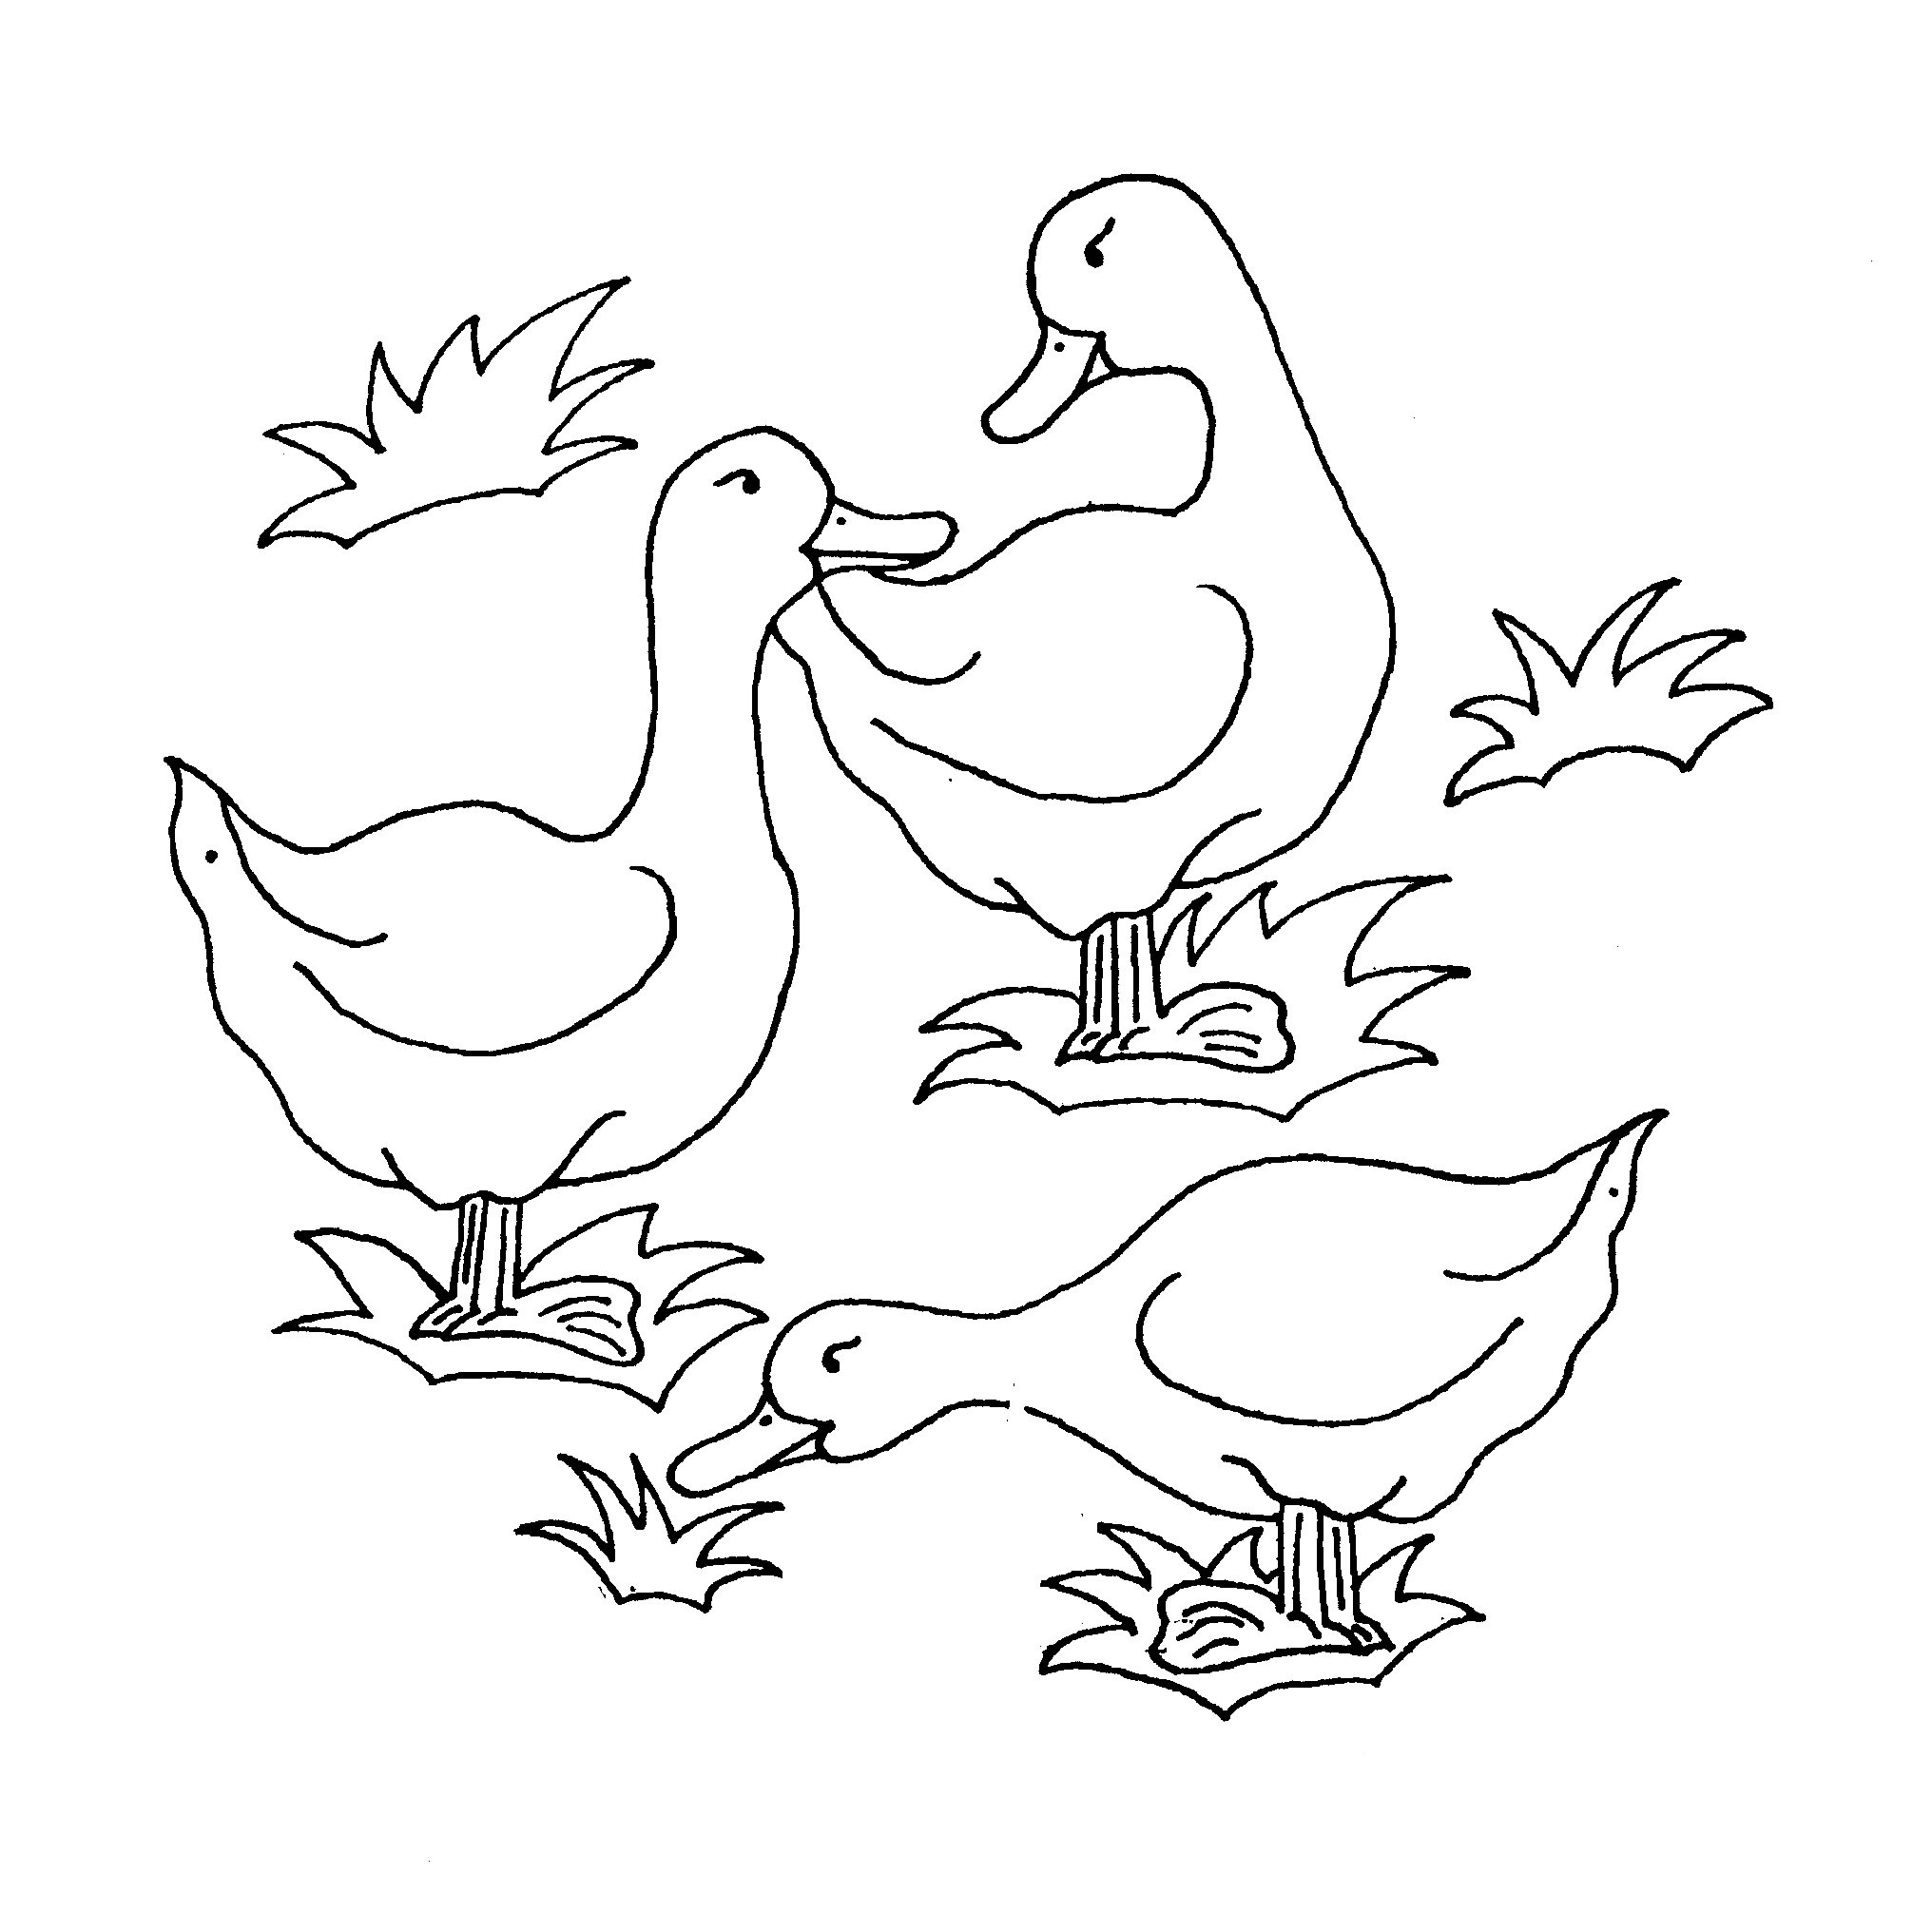 coloring image of duck free printable duck coloring pages for kids animal place coloring image duck of